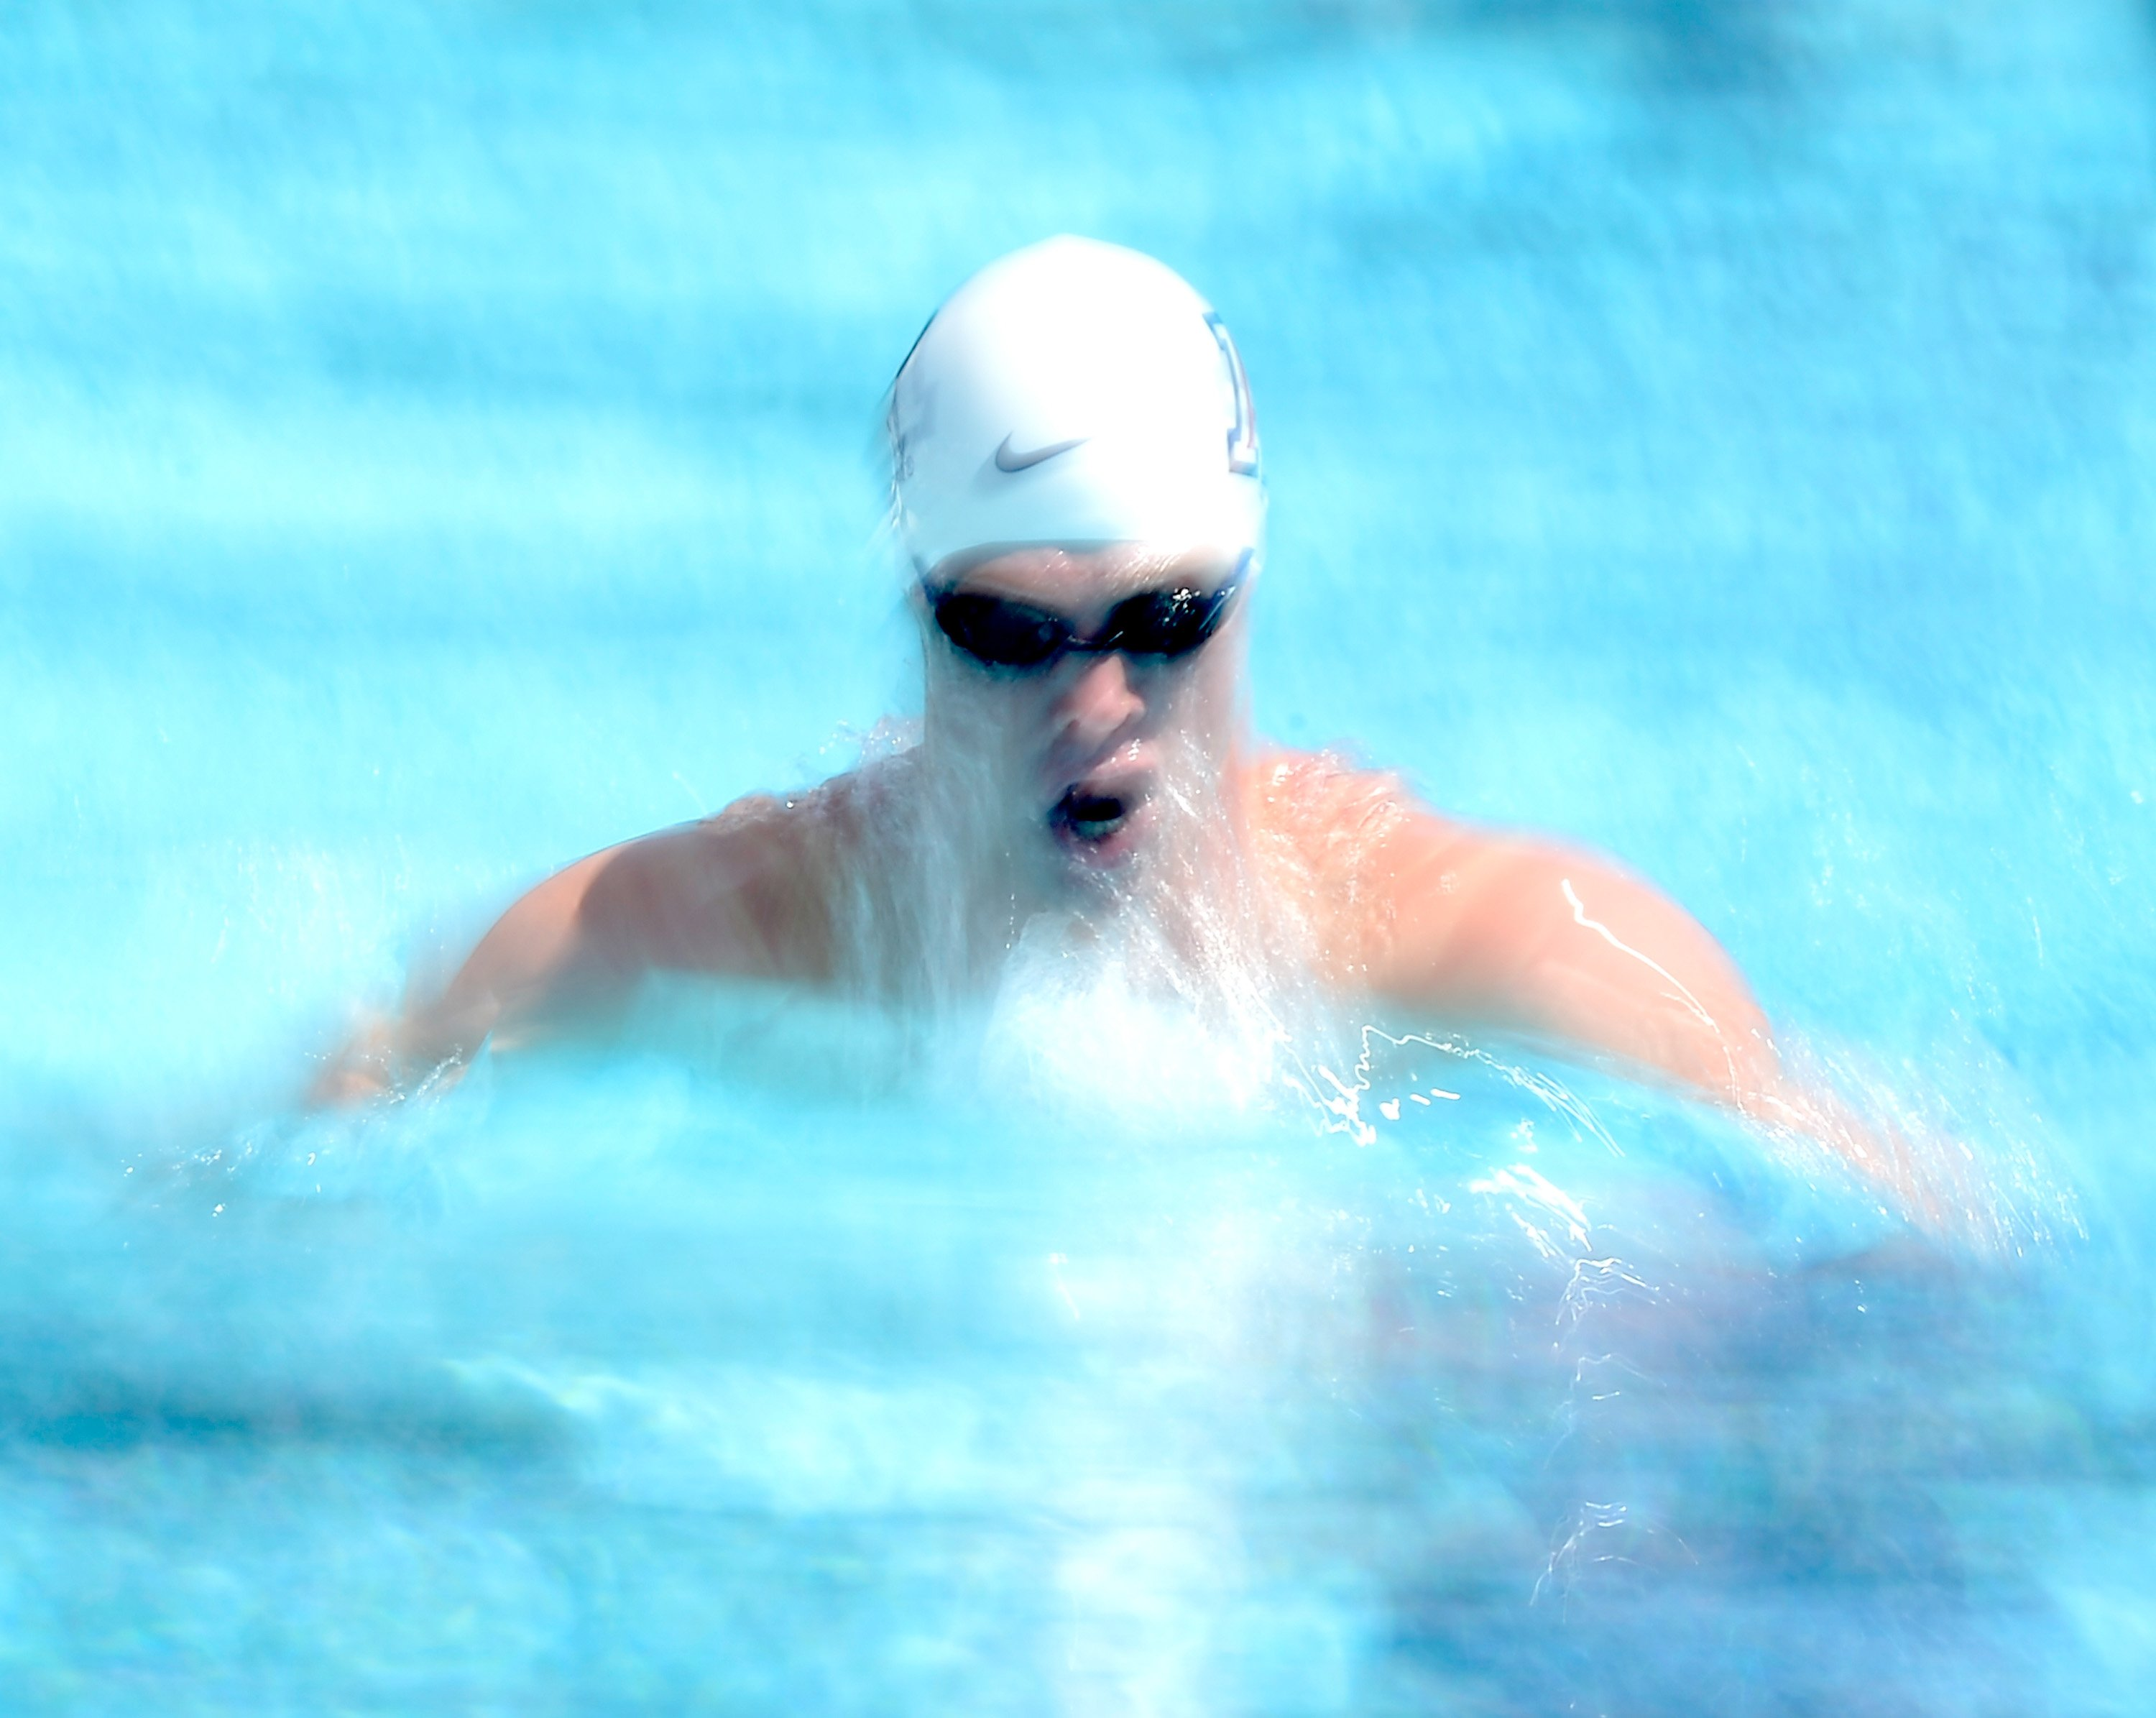 Aug. 7, 2014. Kevin Cordes swims in the Men's 200 Meter Breaststroke Prelims during the 2014 Phillips 66 National Championships at the Woollett Aquatic Center in Irvine, California.